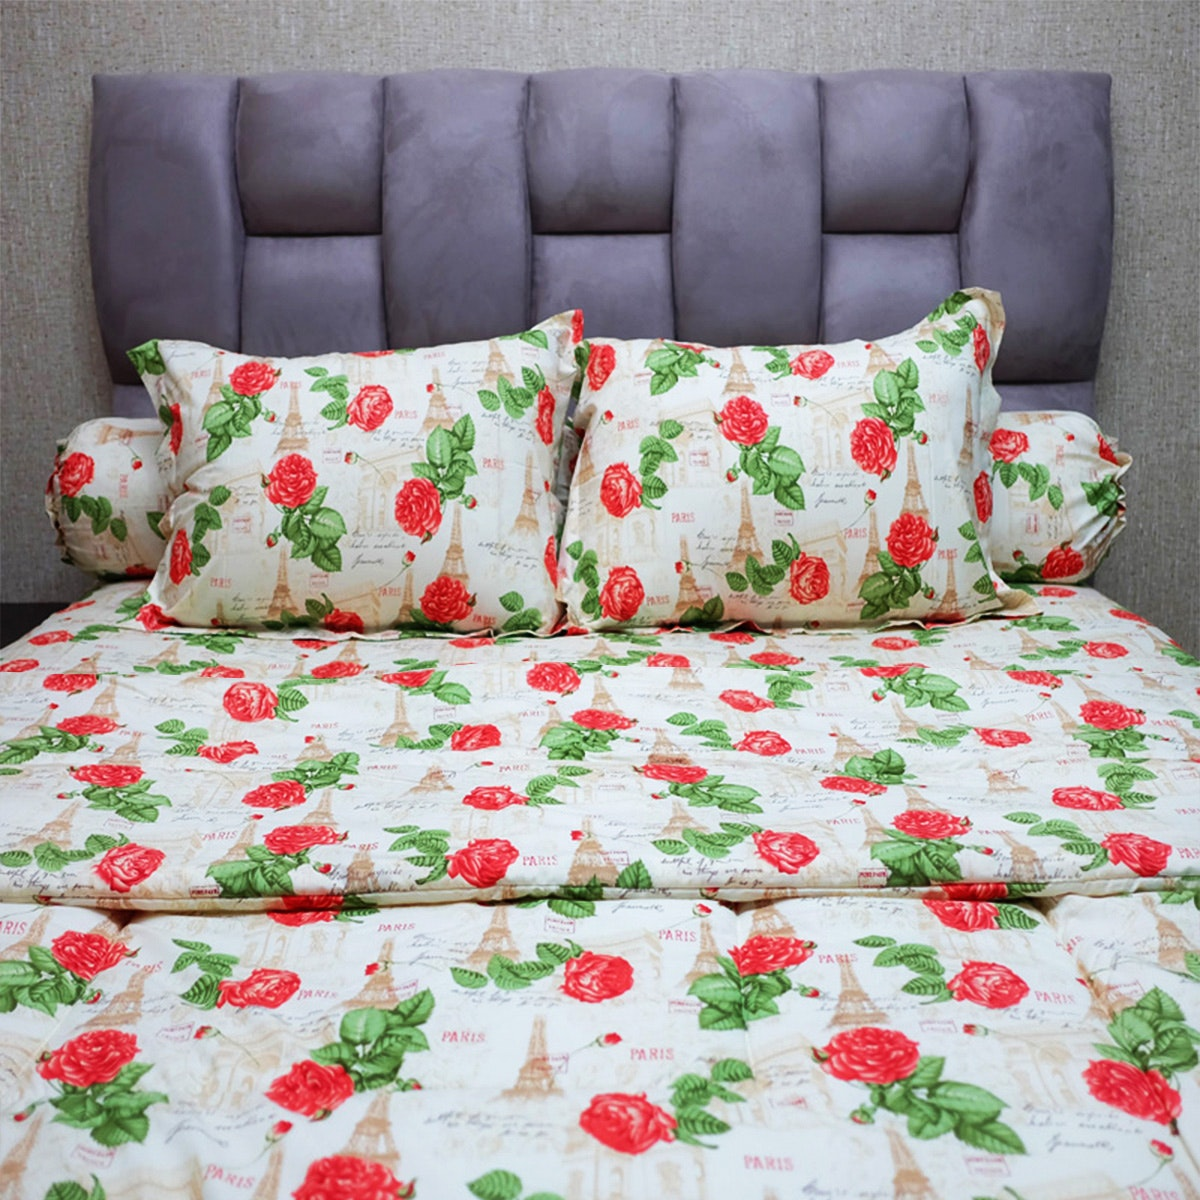 Sleep Buddy Set Sprei dan Bed Cover Amore Rose Red CVC 180x200x30